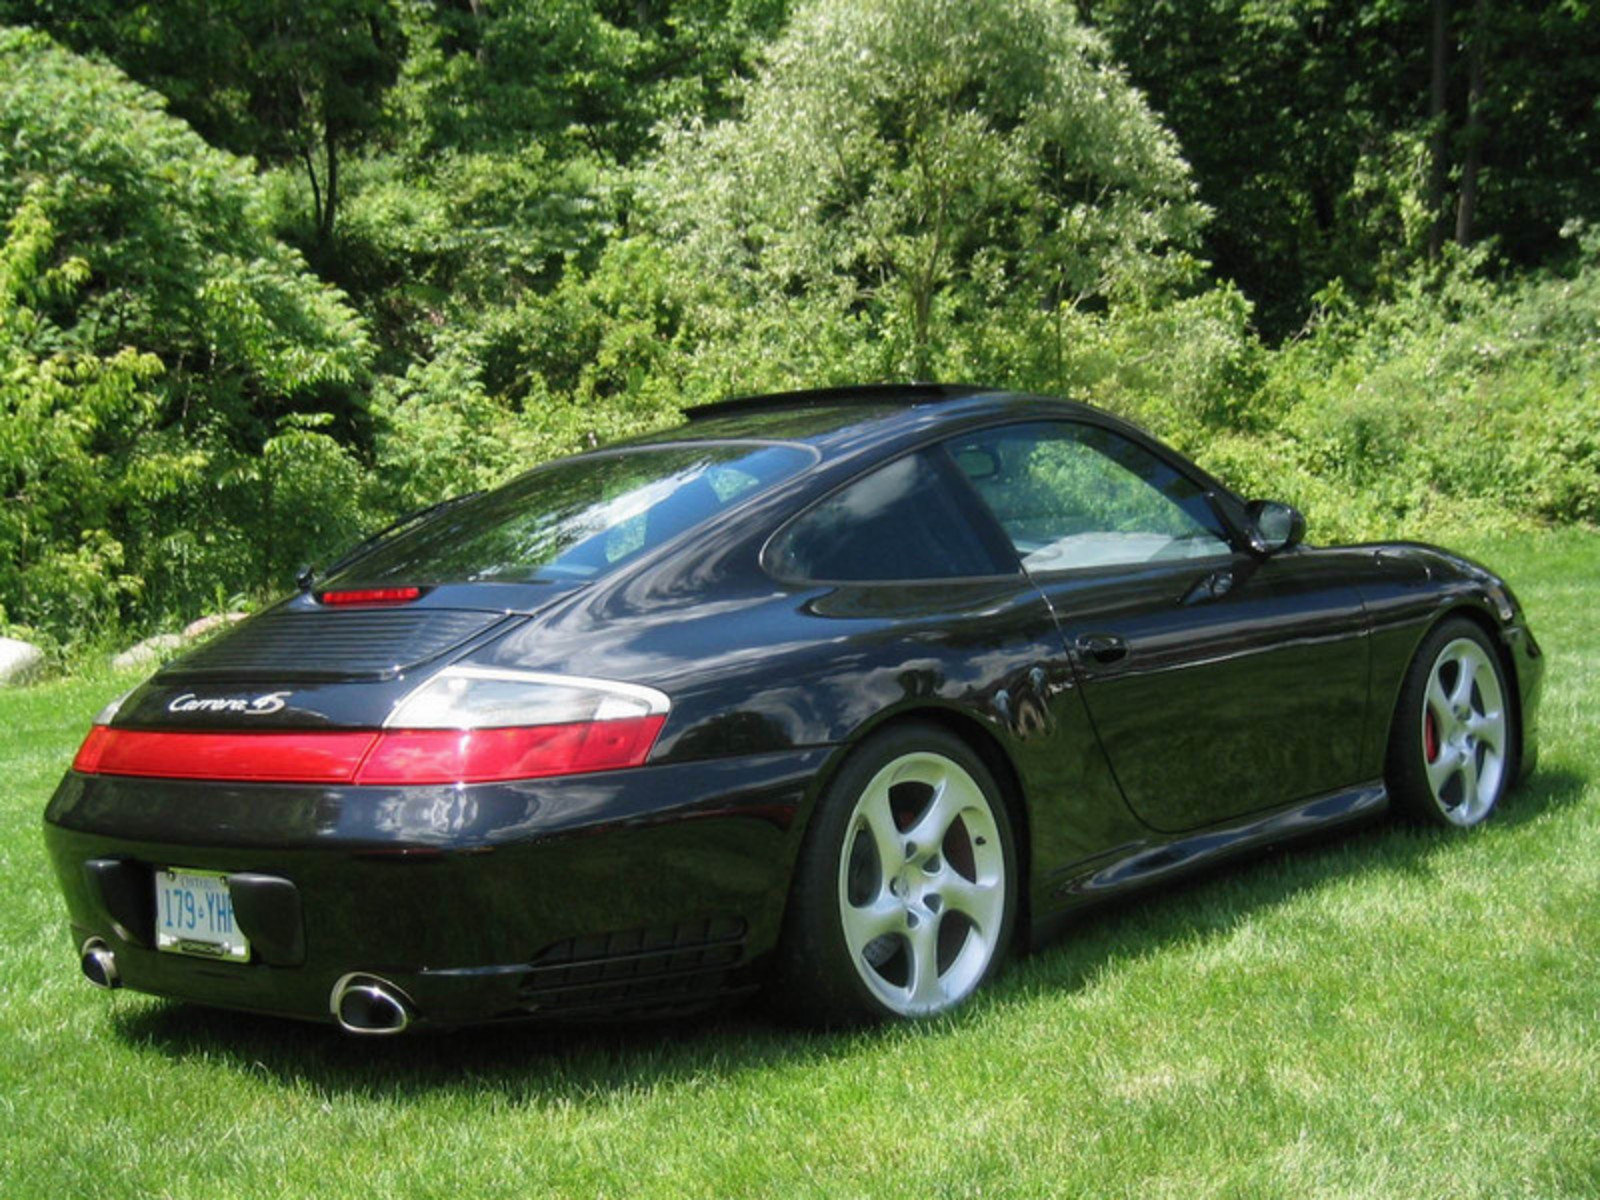 2004 porsche 911 carrera 4s 996 picture 18646 car review top speed. Black Bedroom Furniture Sets. Home Design Ideas